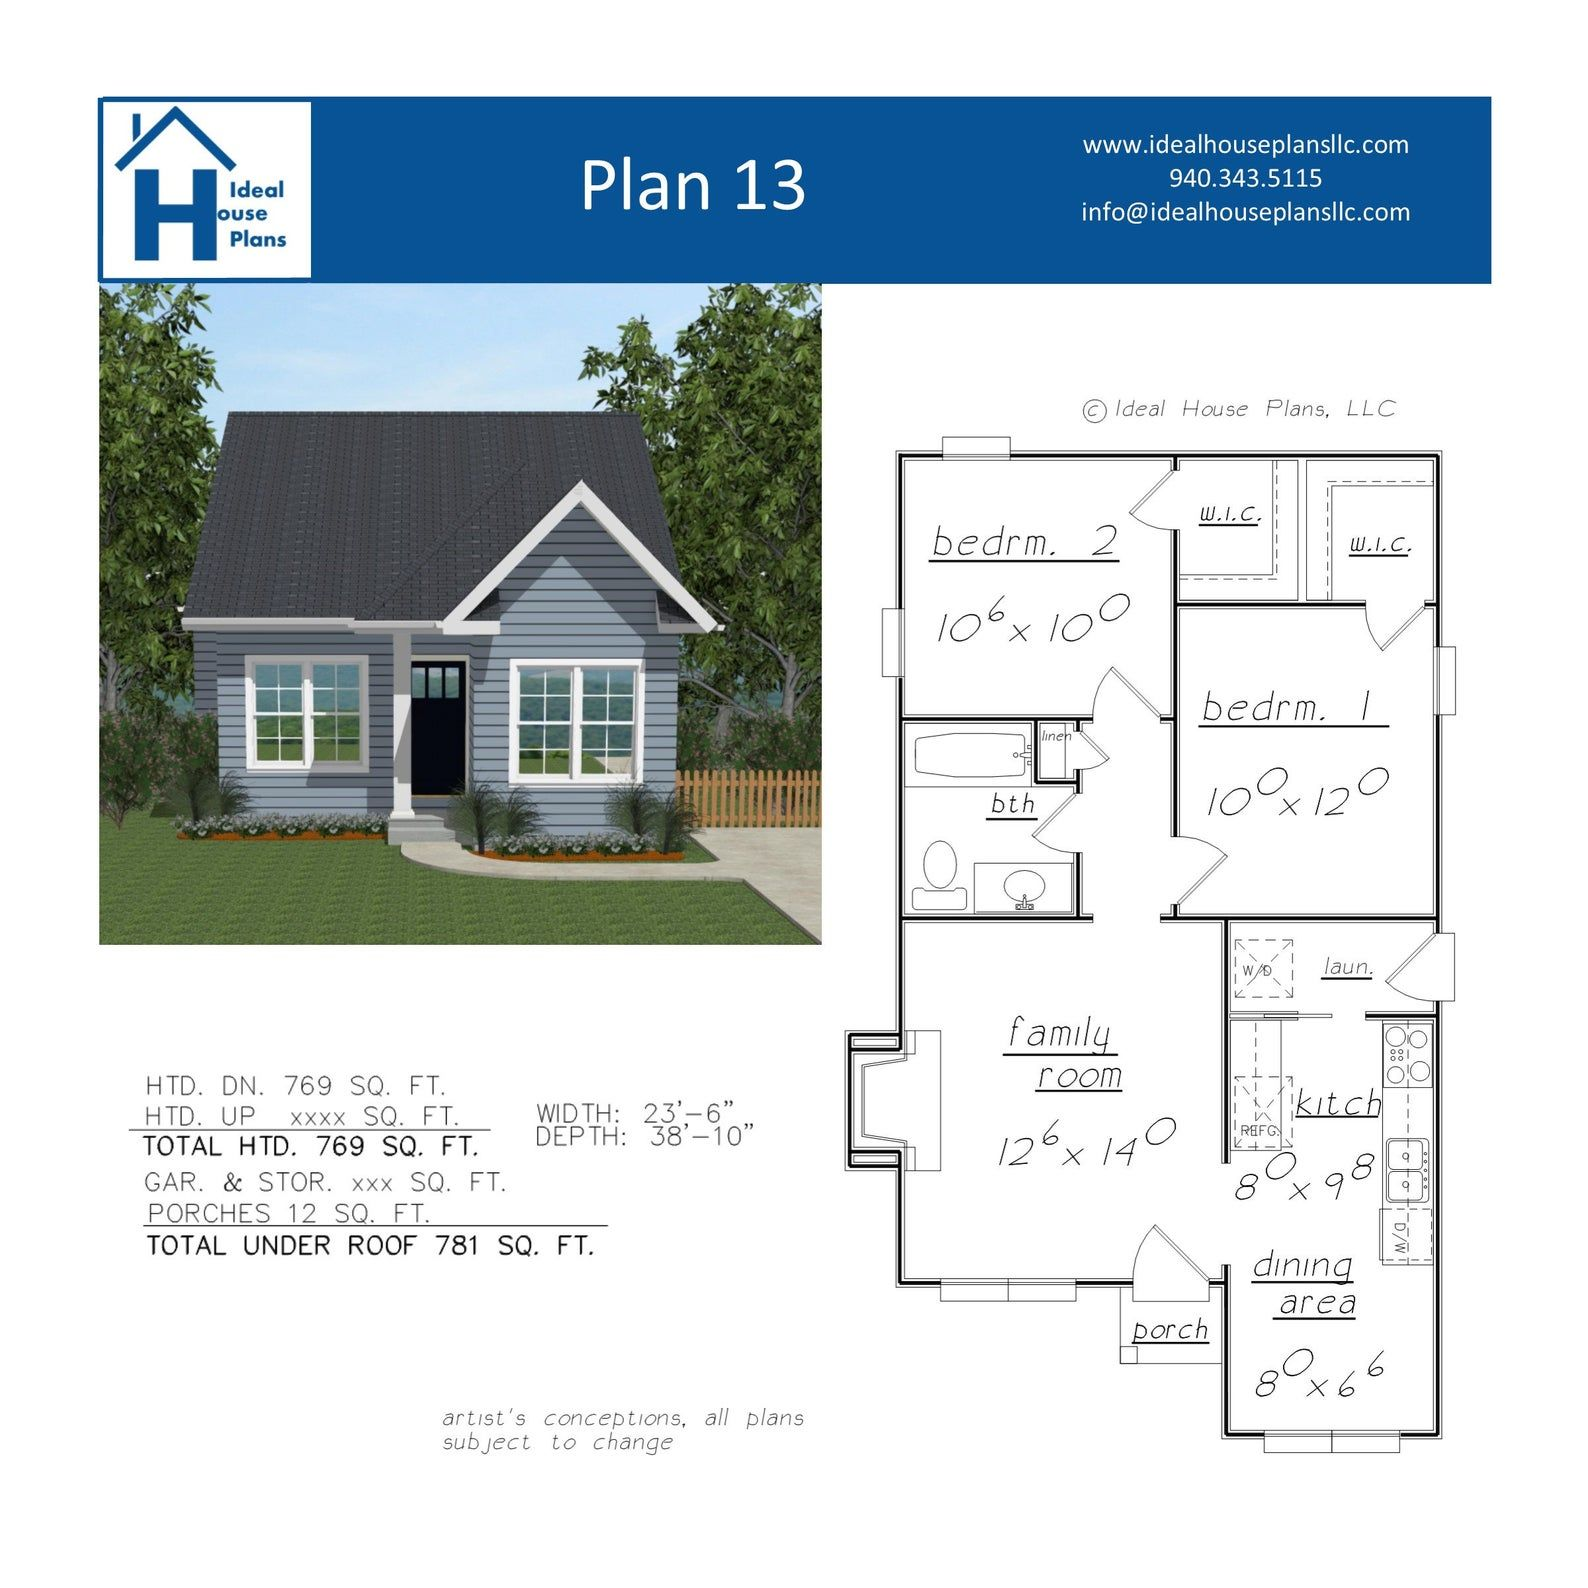 2 Bedroom House Plan Guest or In Law Suite Ready to Build Architectural Drawings PDF Instant Download